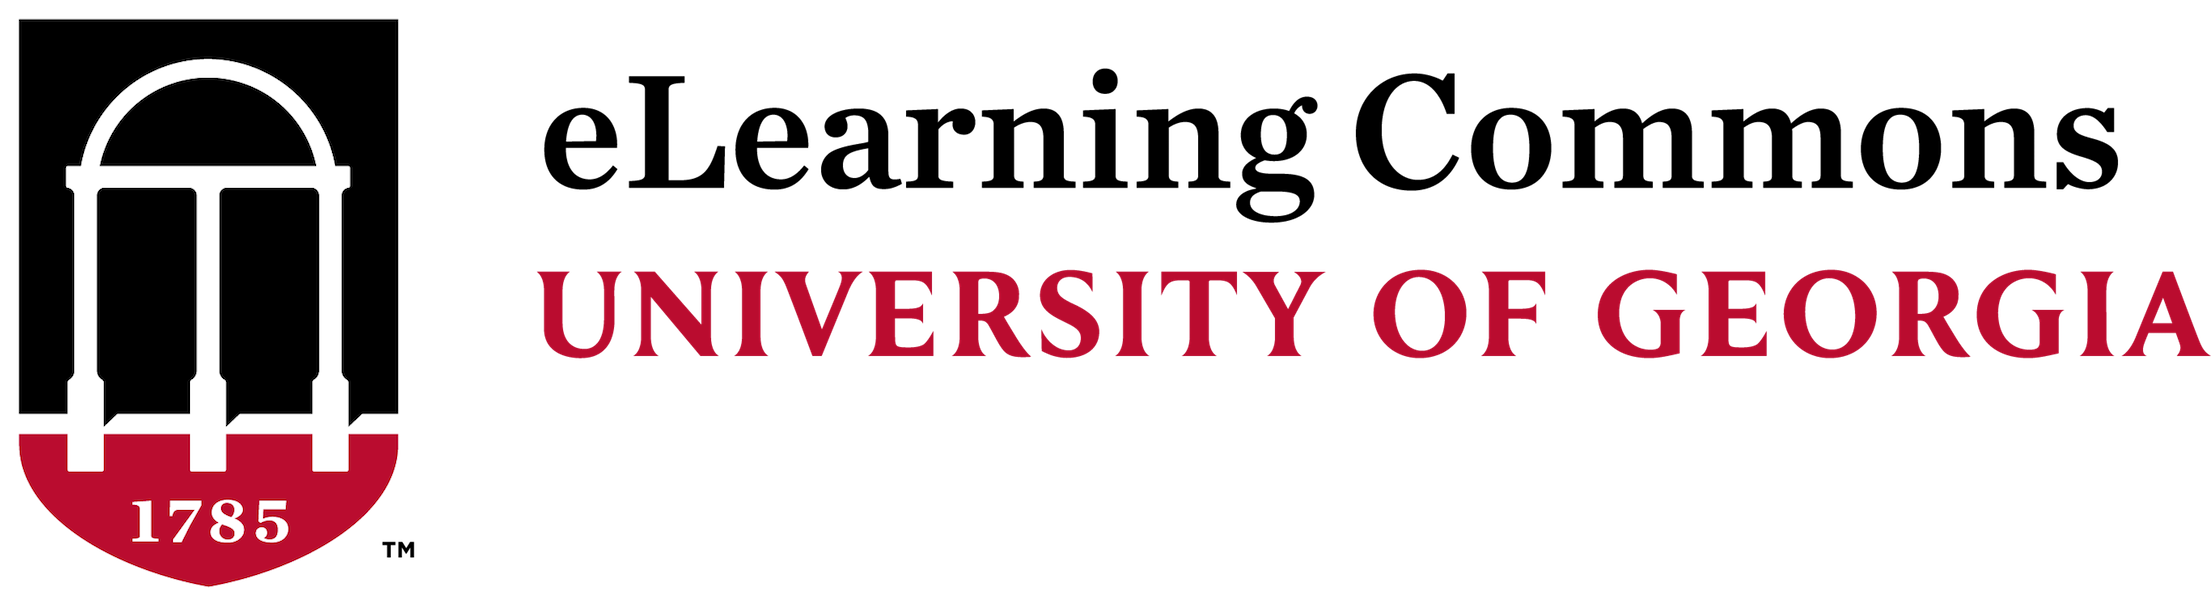 eLearning Commons Help at UGA Logo